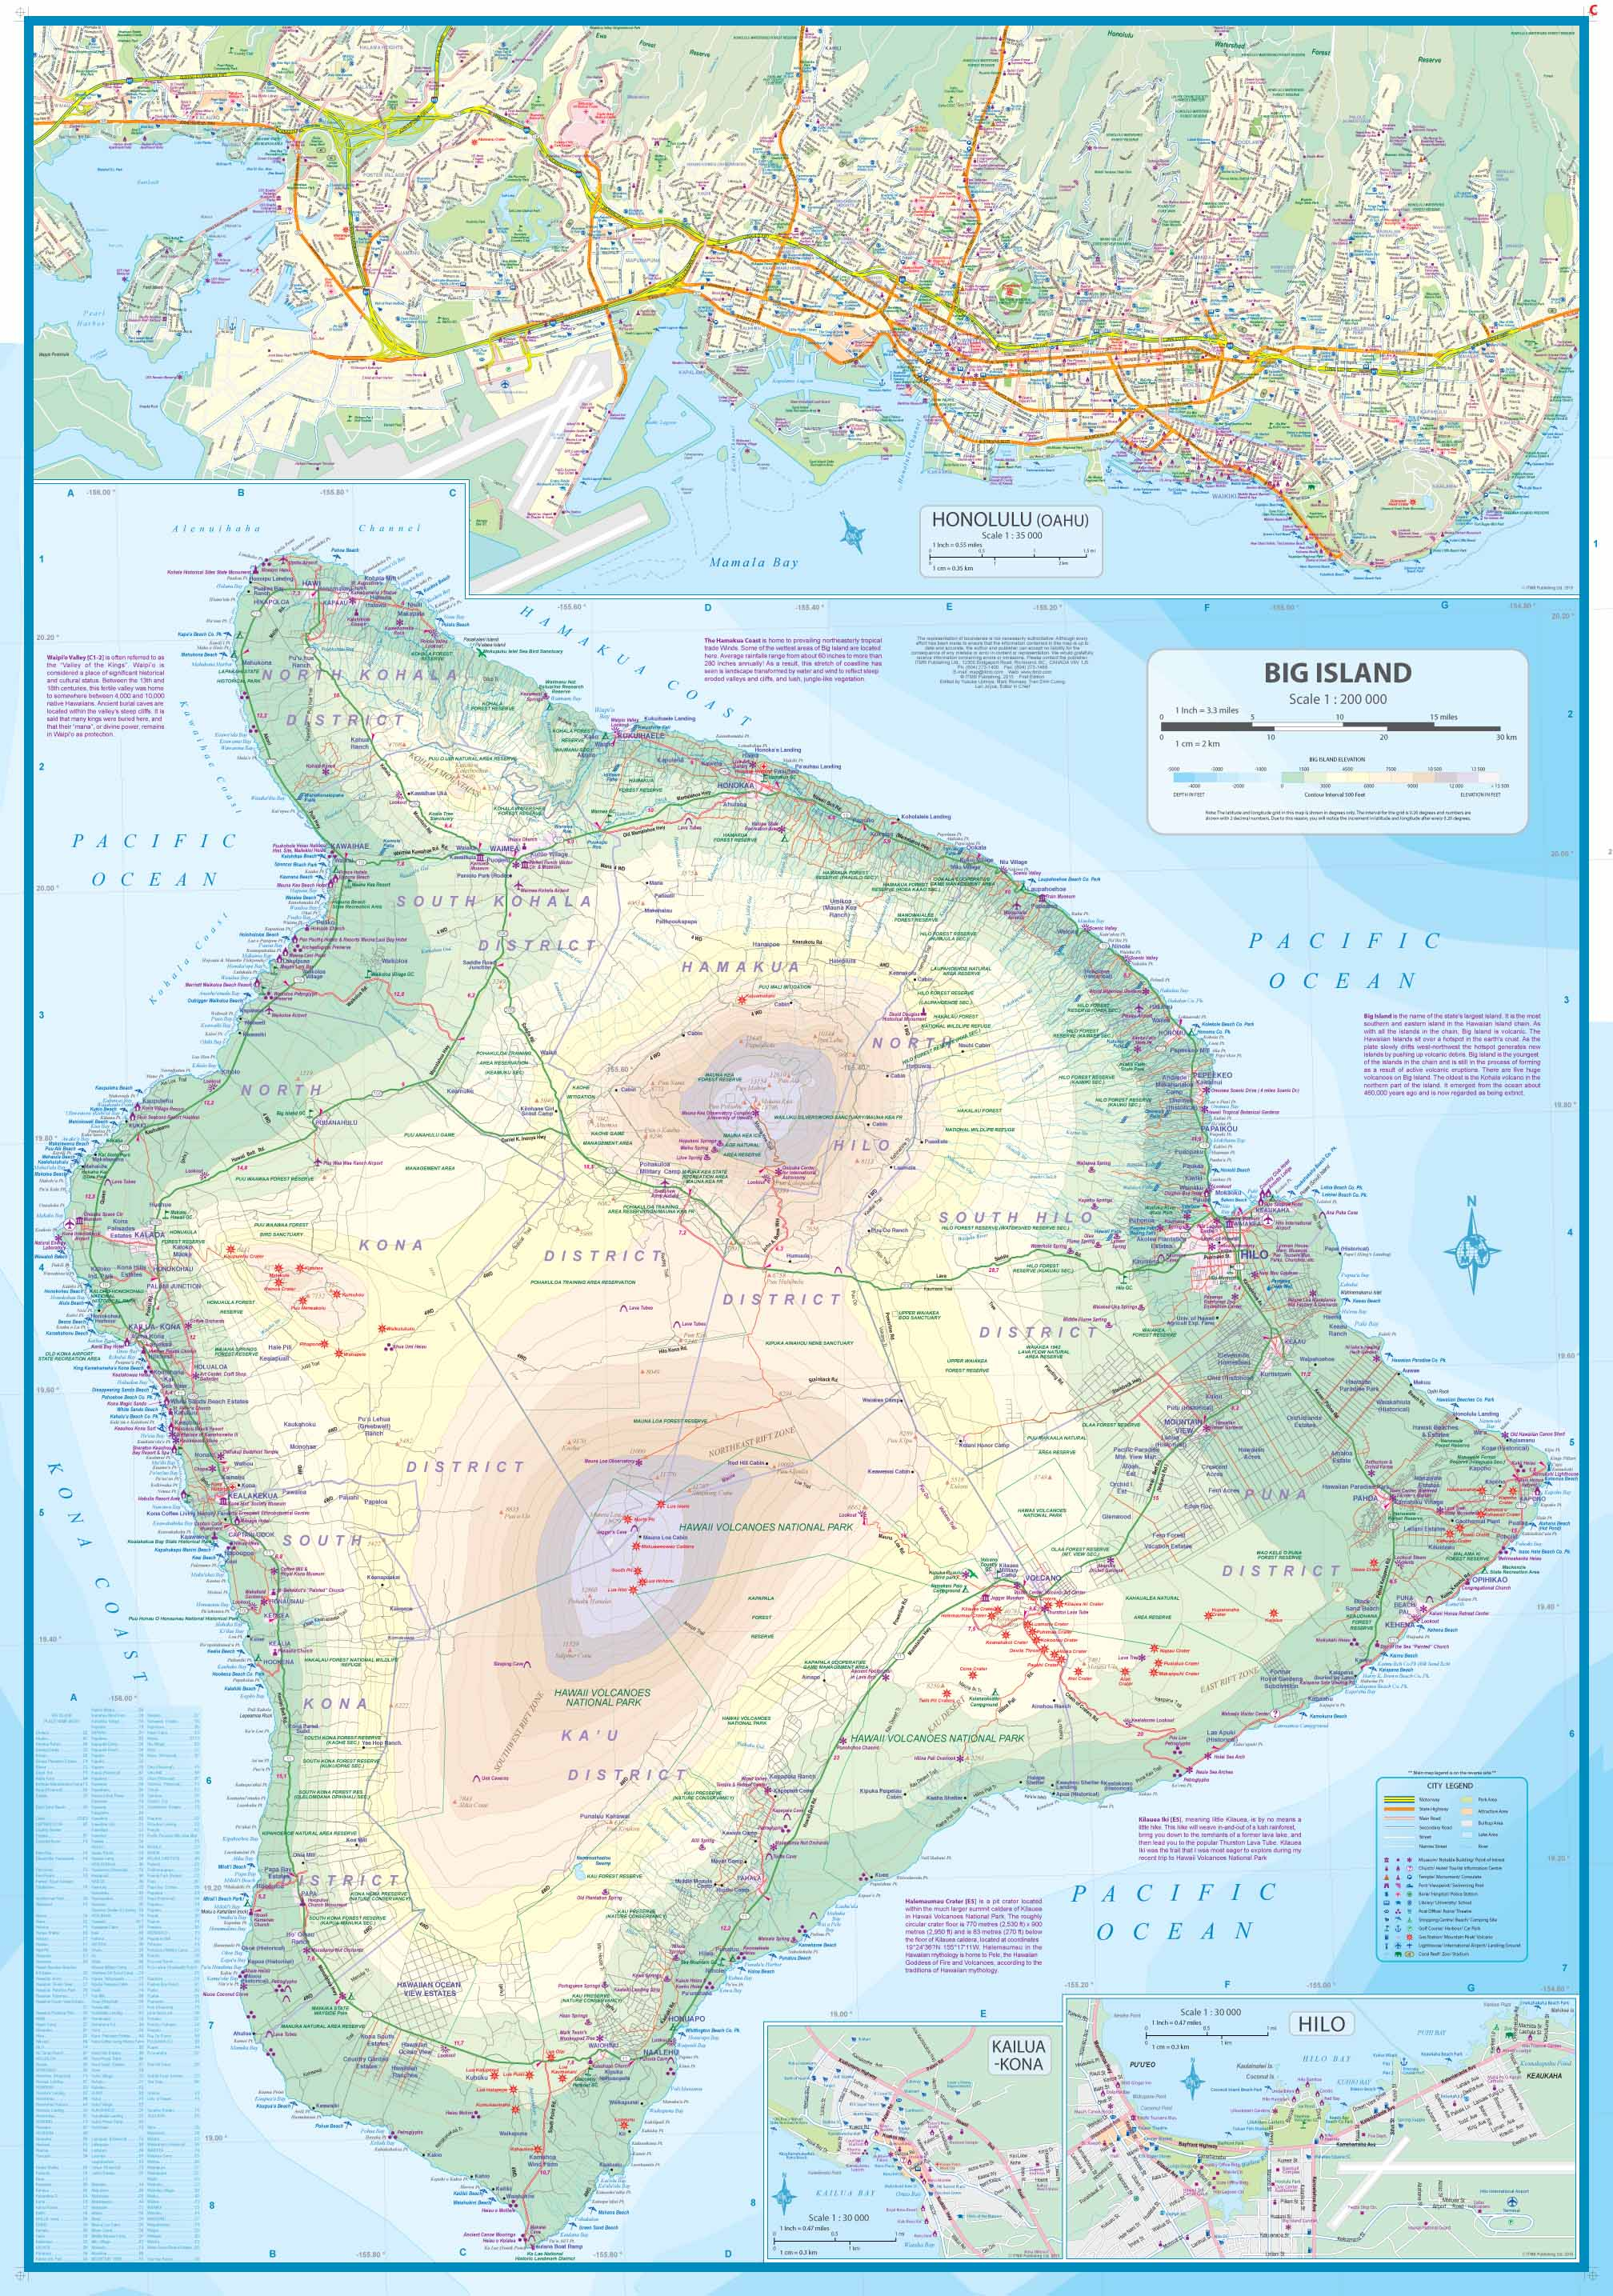 Topographic Map Oahu.Maps For Travel City Maps Road Maps Guides Globes Topographic Maps